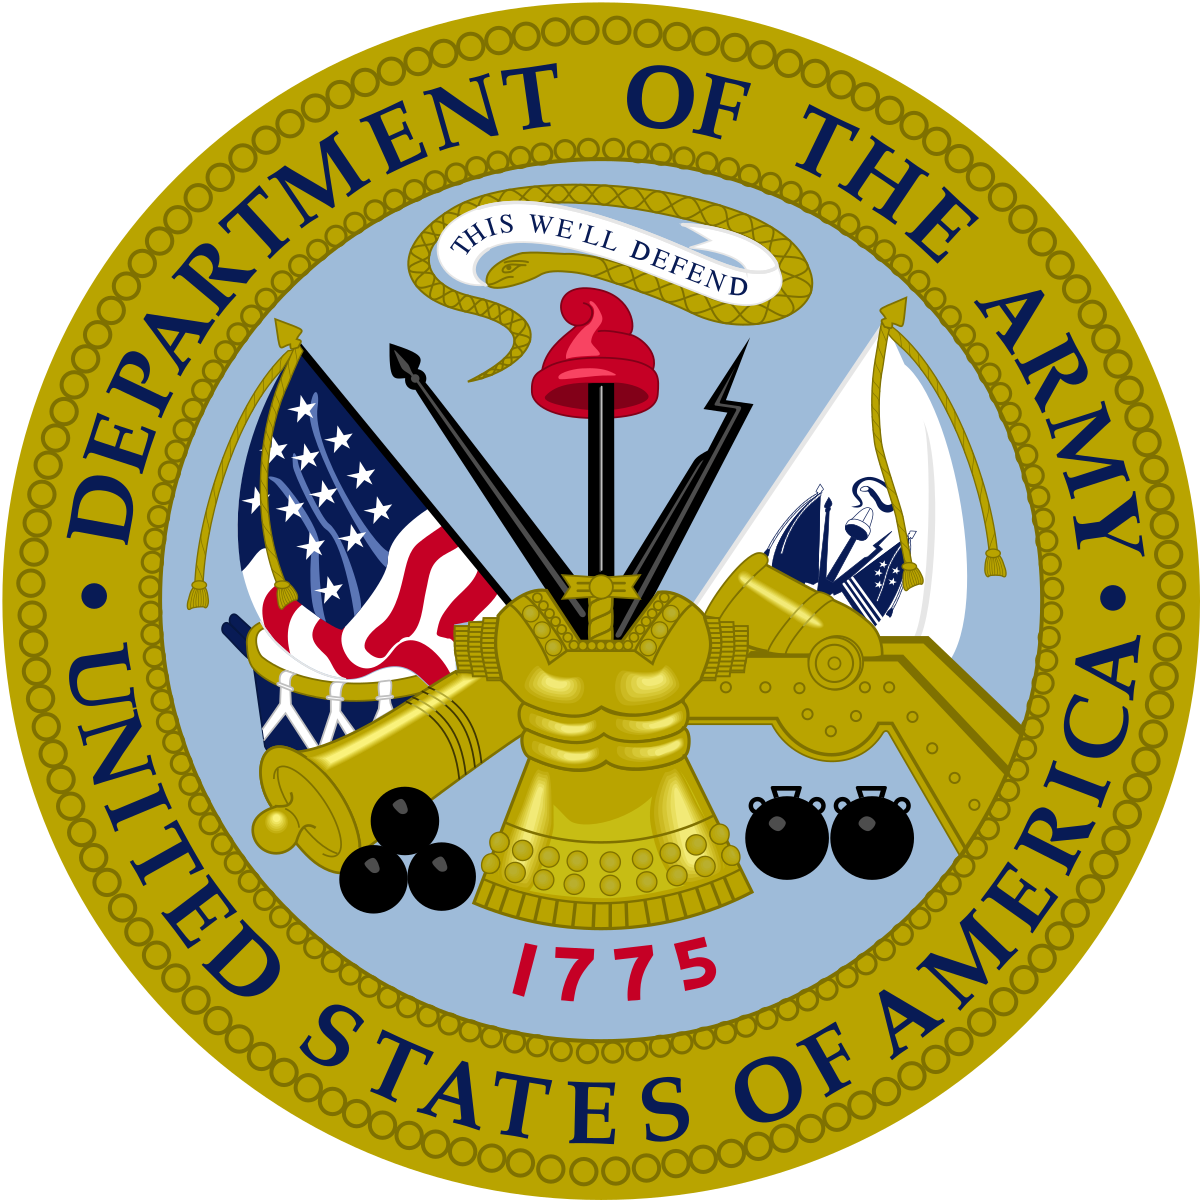 United States Army branch insignia.